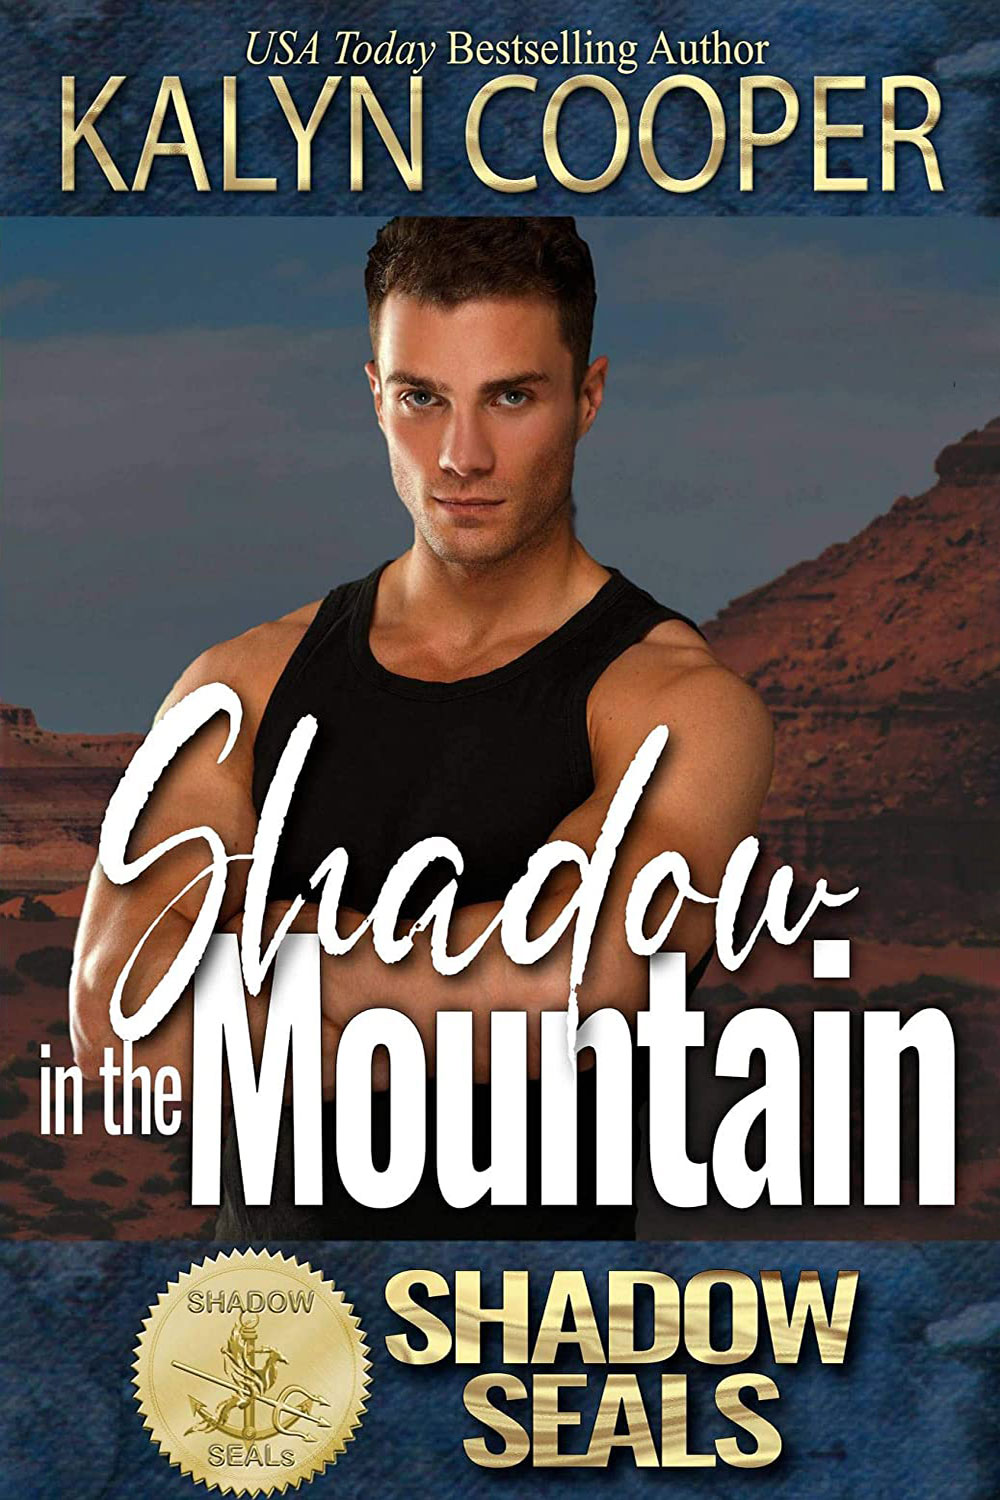 Shadow in the Mountain by KaLyn Cooper